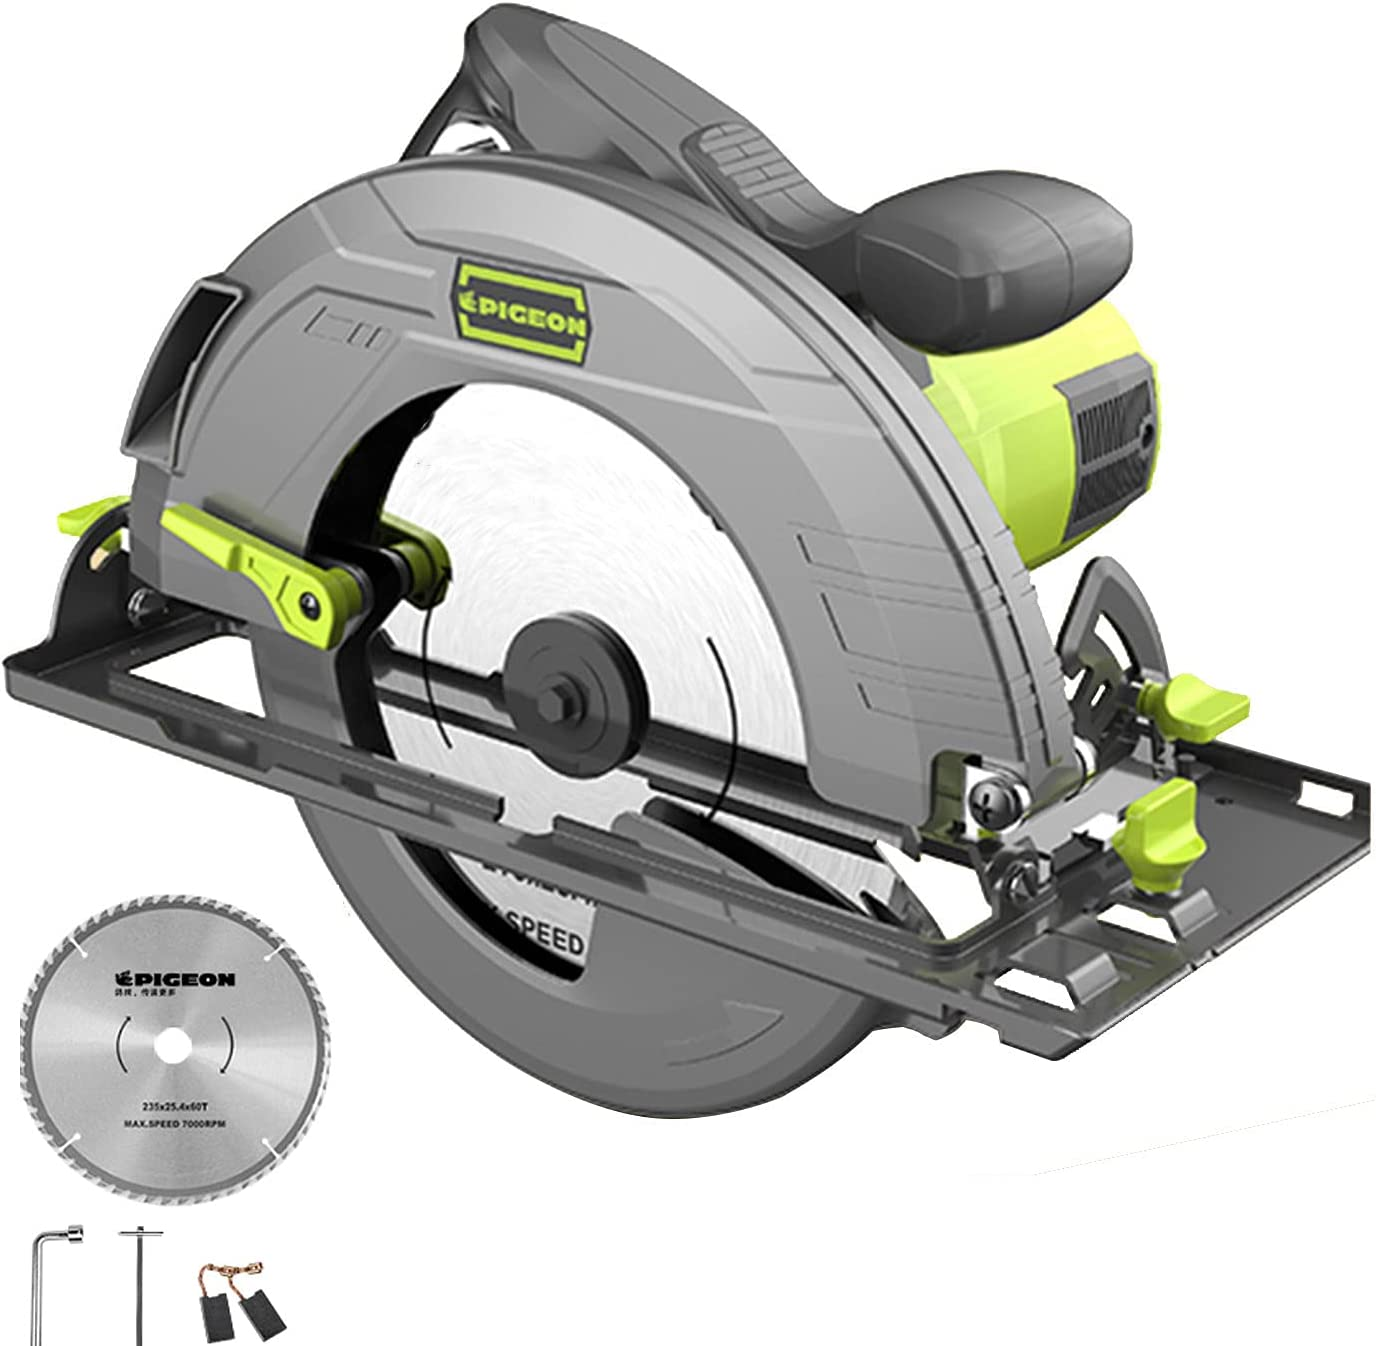 Electric Circular New sales Saw with Speed Courier shipping free shipping 40T B 60T 5000RPM